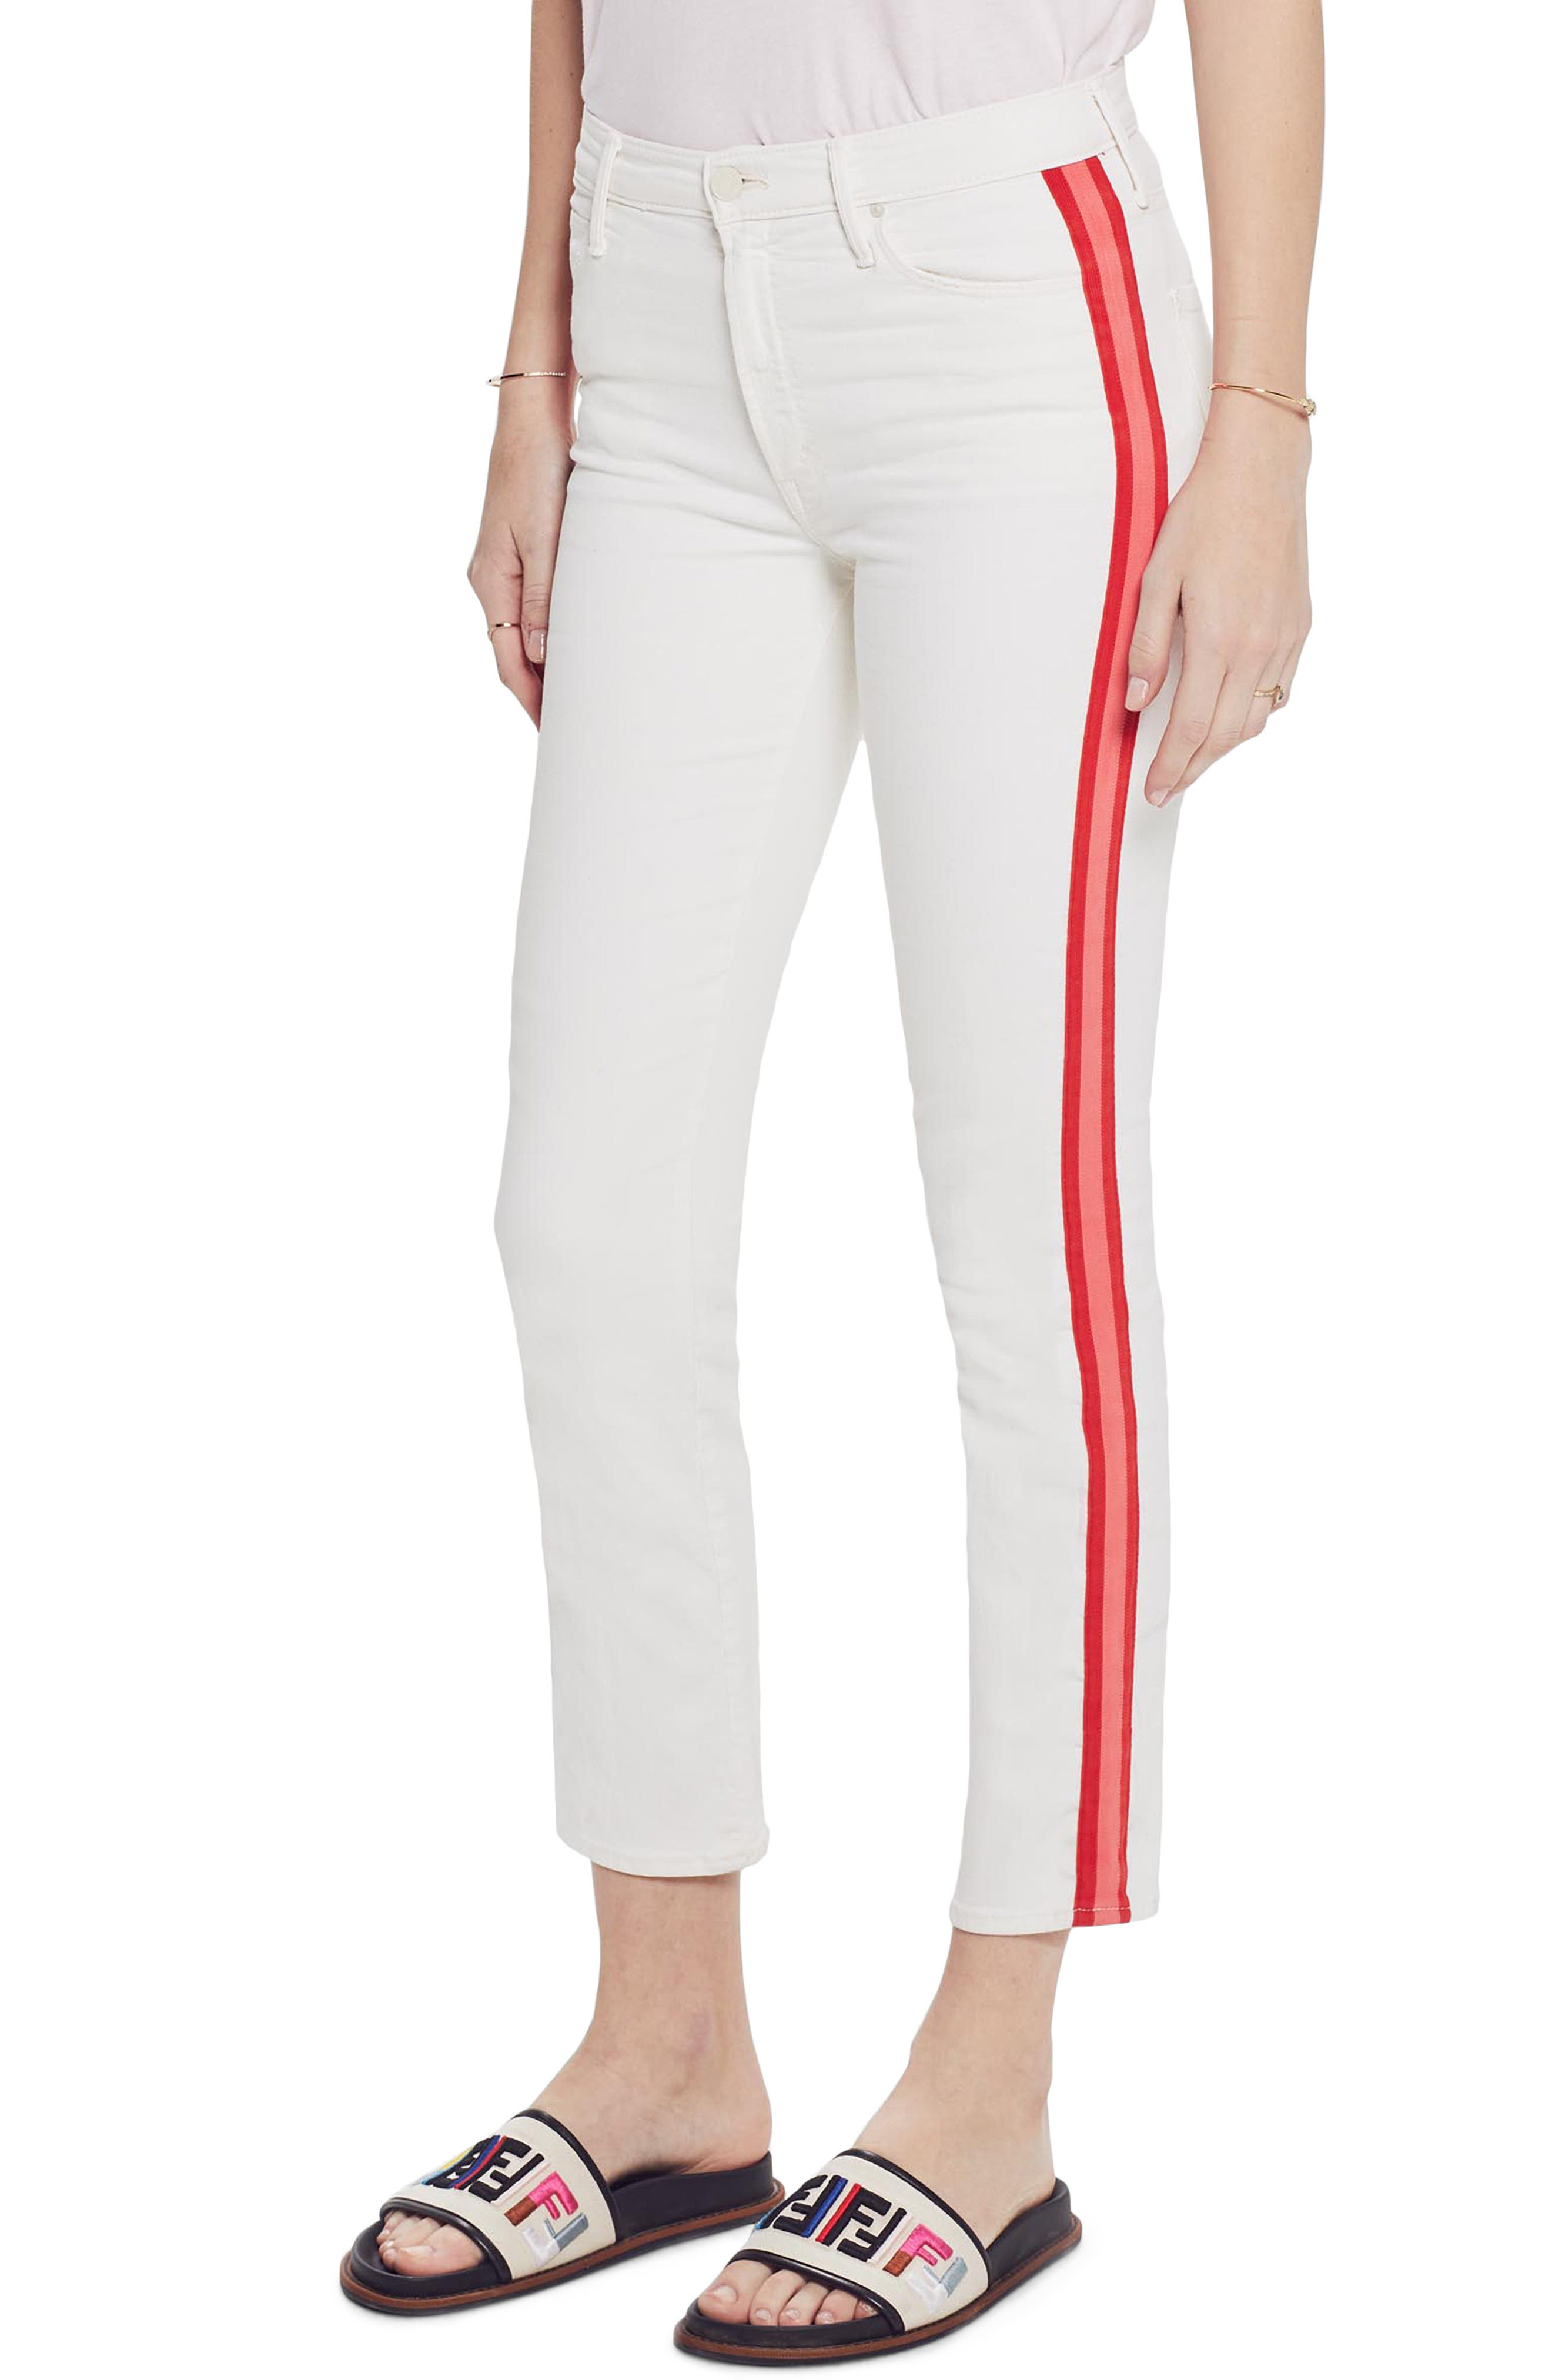 MOTHER, The Dazzler Mid Rise Crop Slim Jeans, Main thumbnail 1, color, WHIPPING THE CREAM PINK RACER